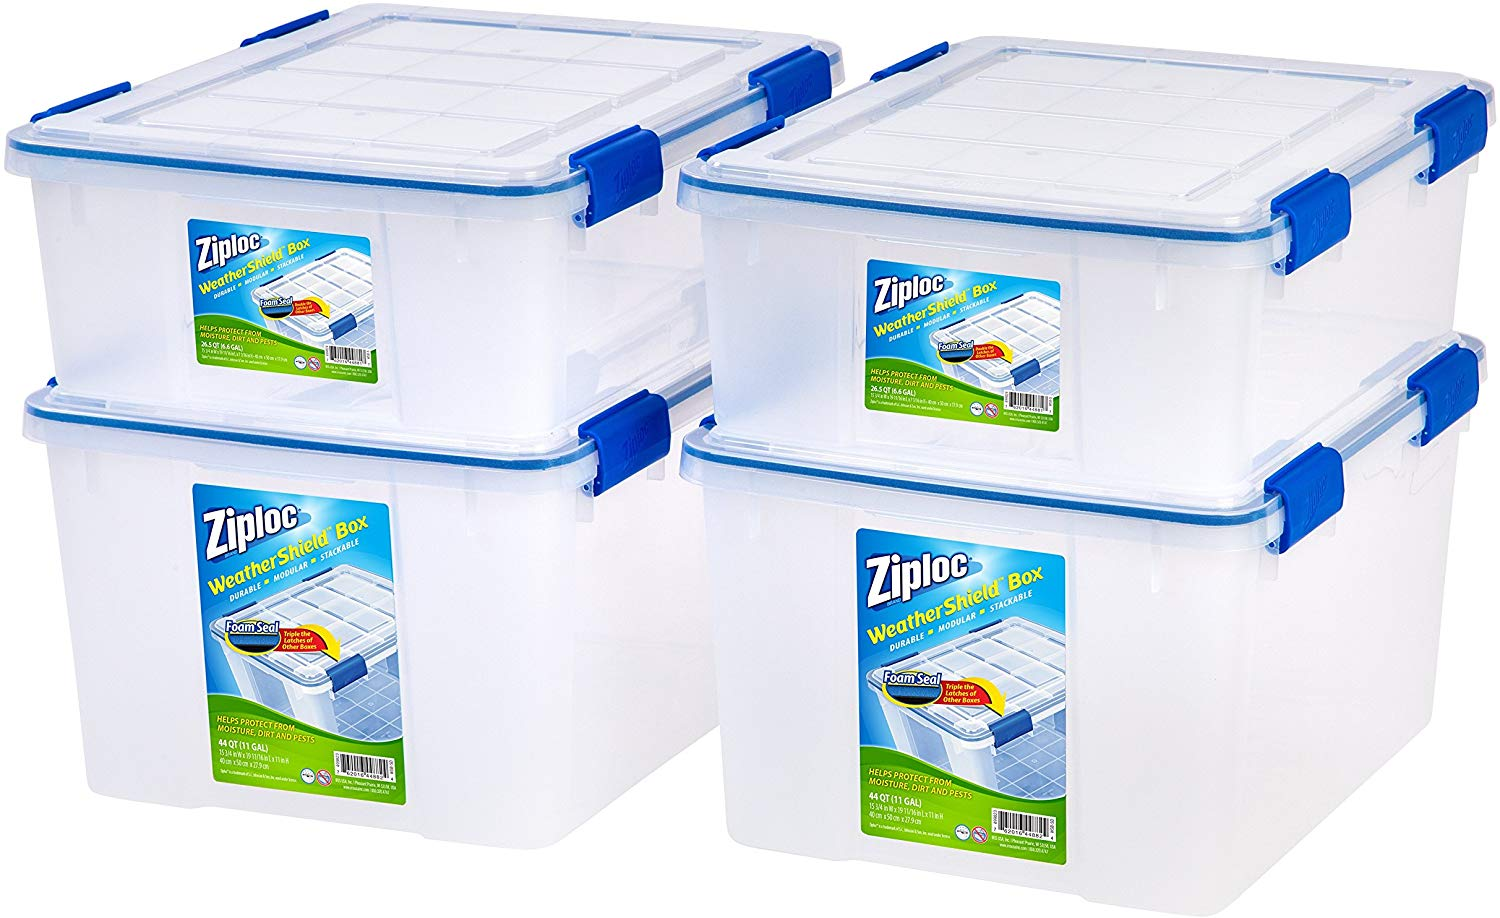 Ziploc WeatherShield Large Storage Boxes (4-Pack)